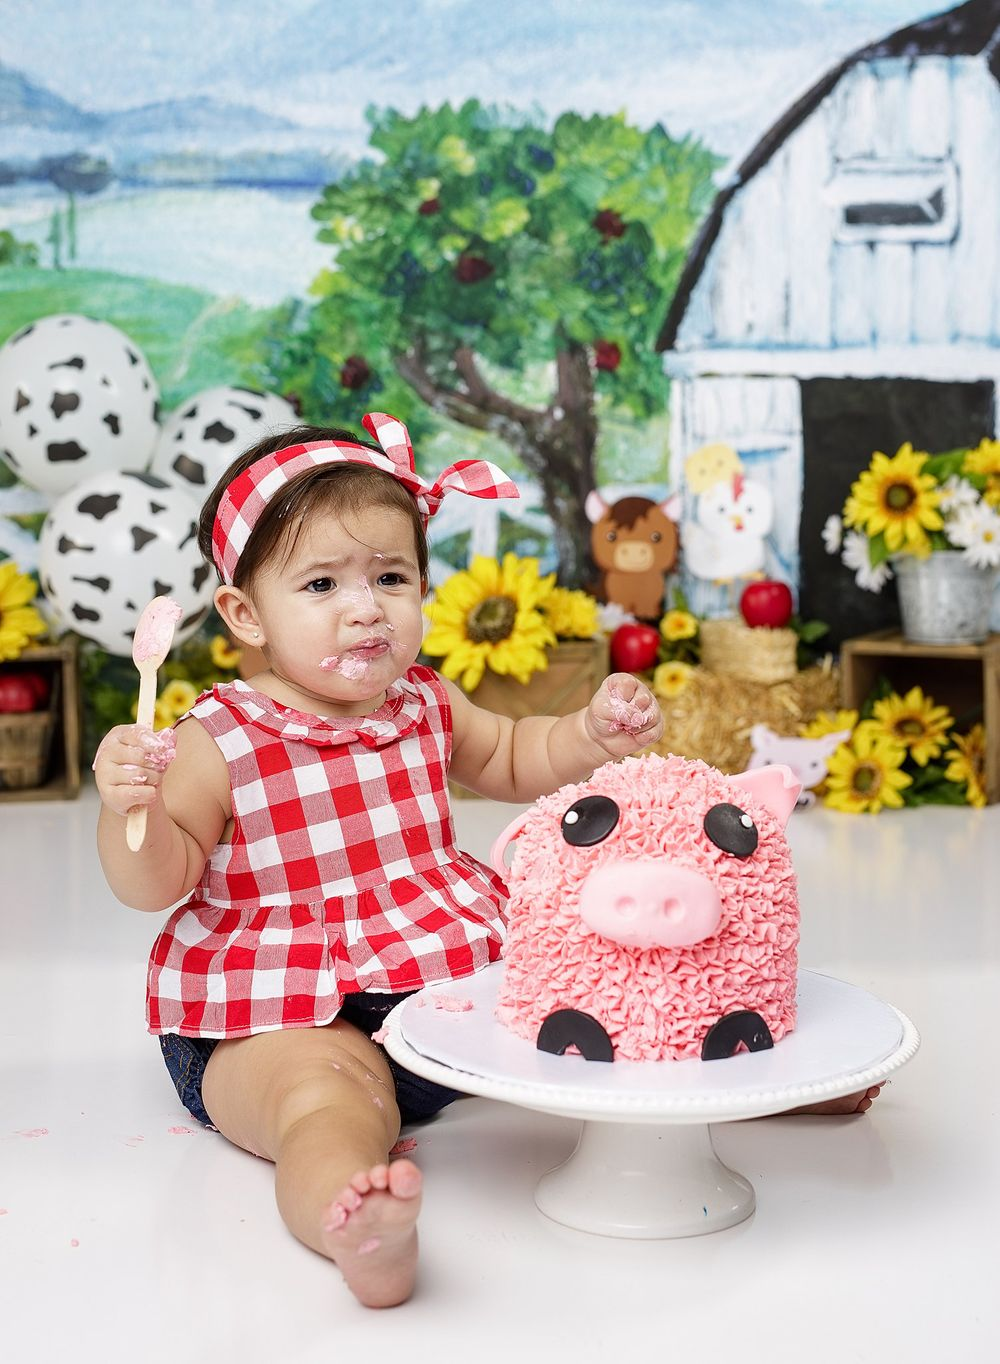 Cake Smash Session farm girl outfit austin newborn photography